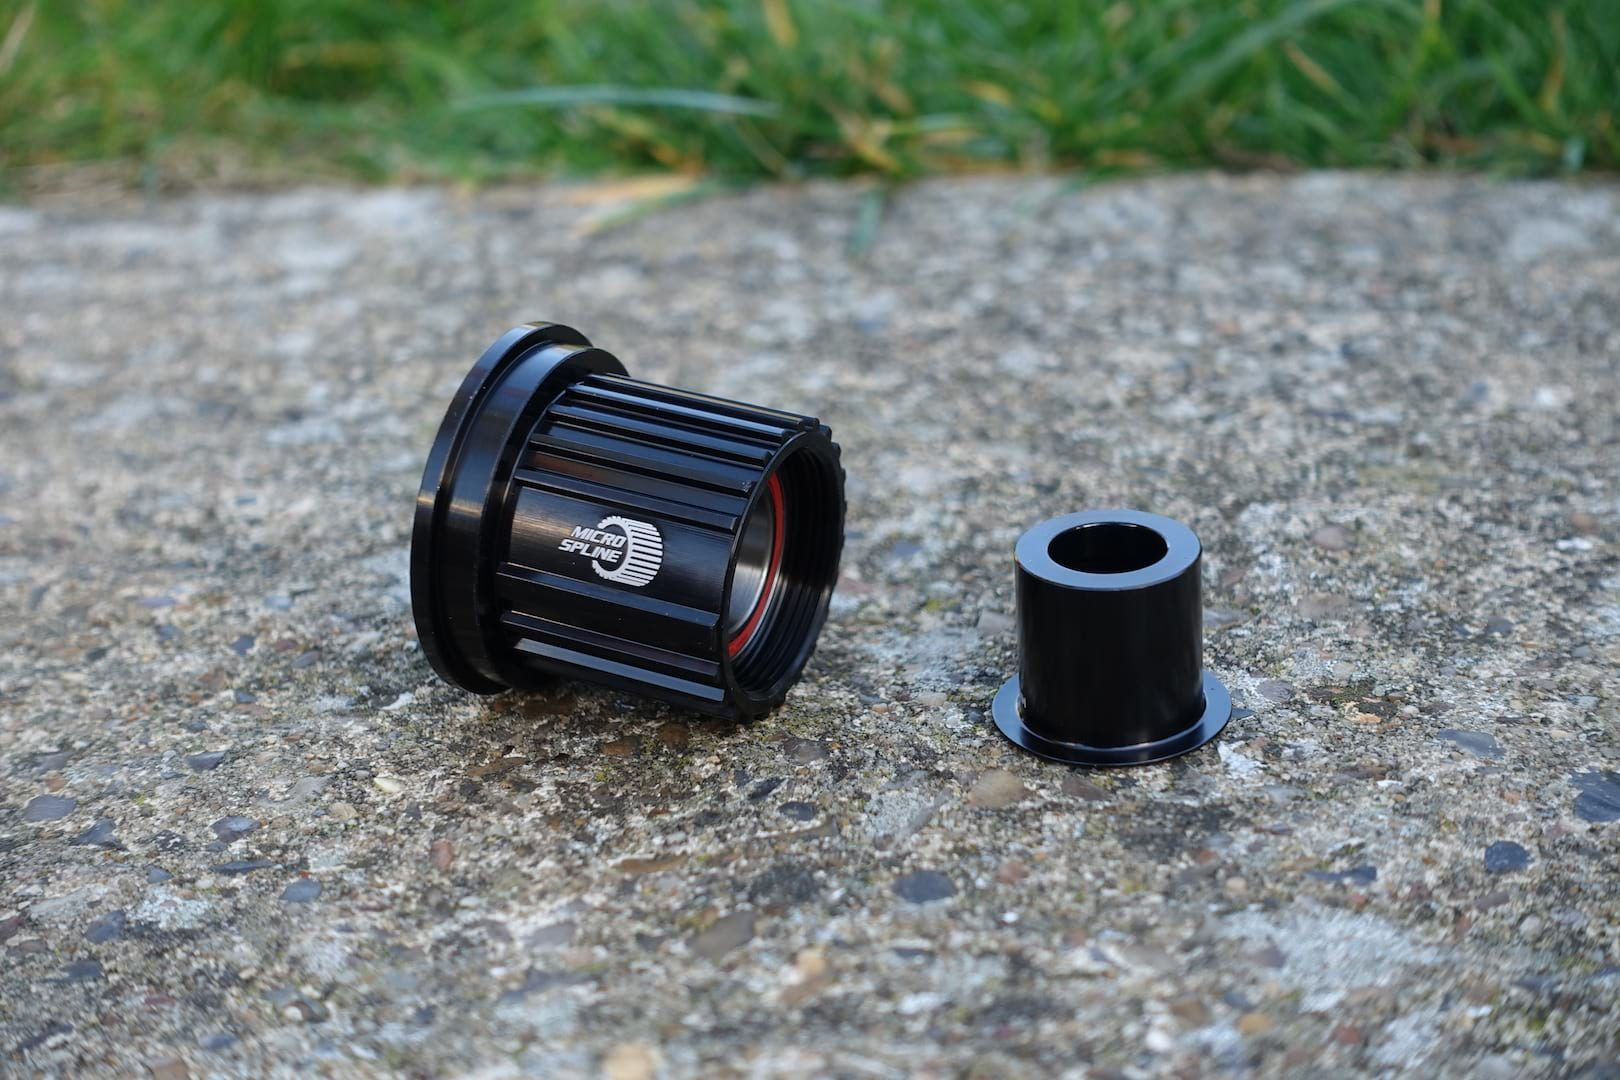 dt swiss micro spline drive freehub body xtr m9100